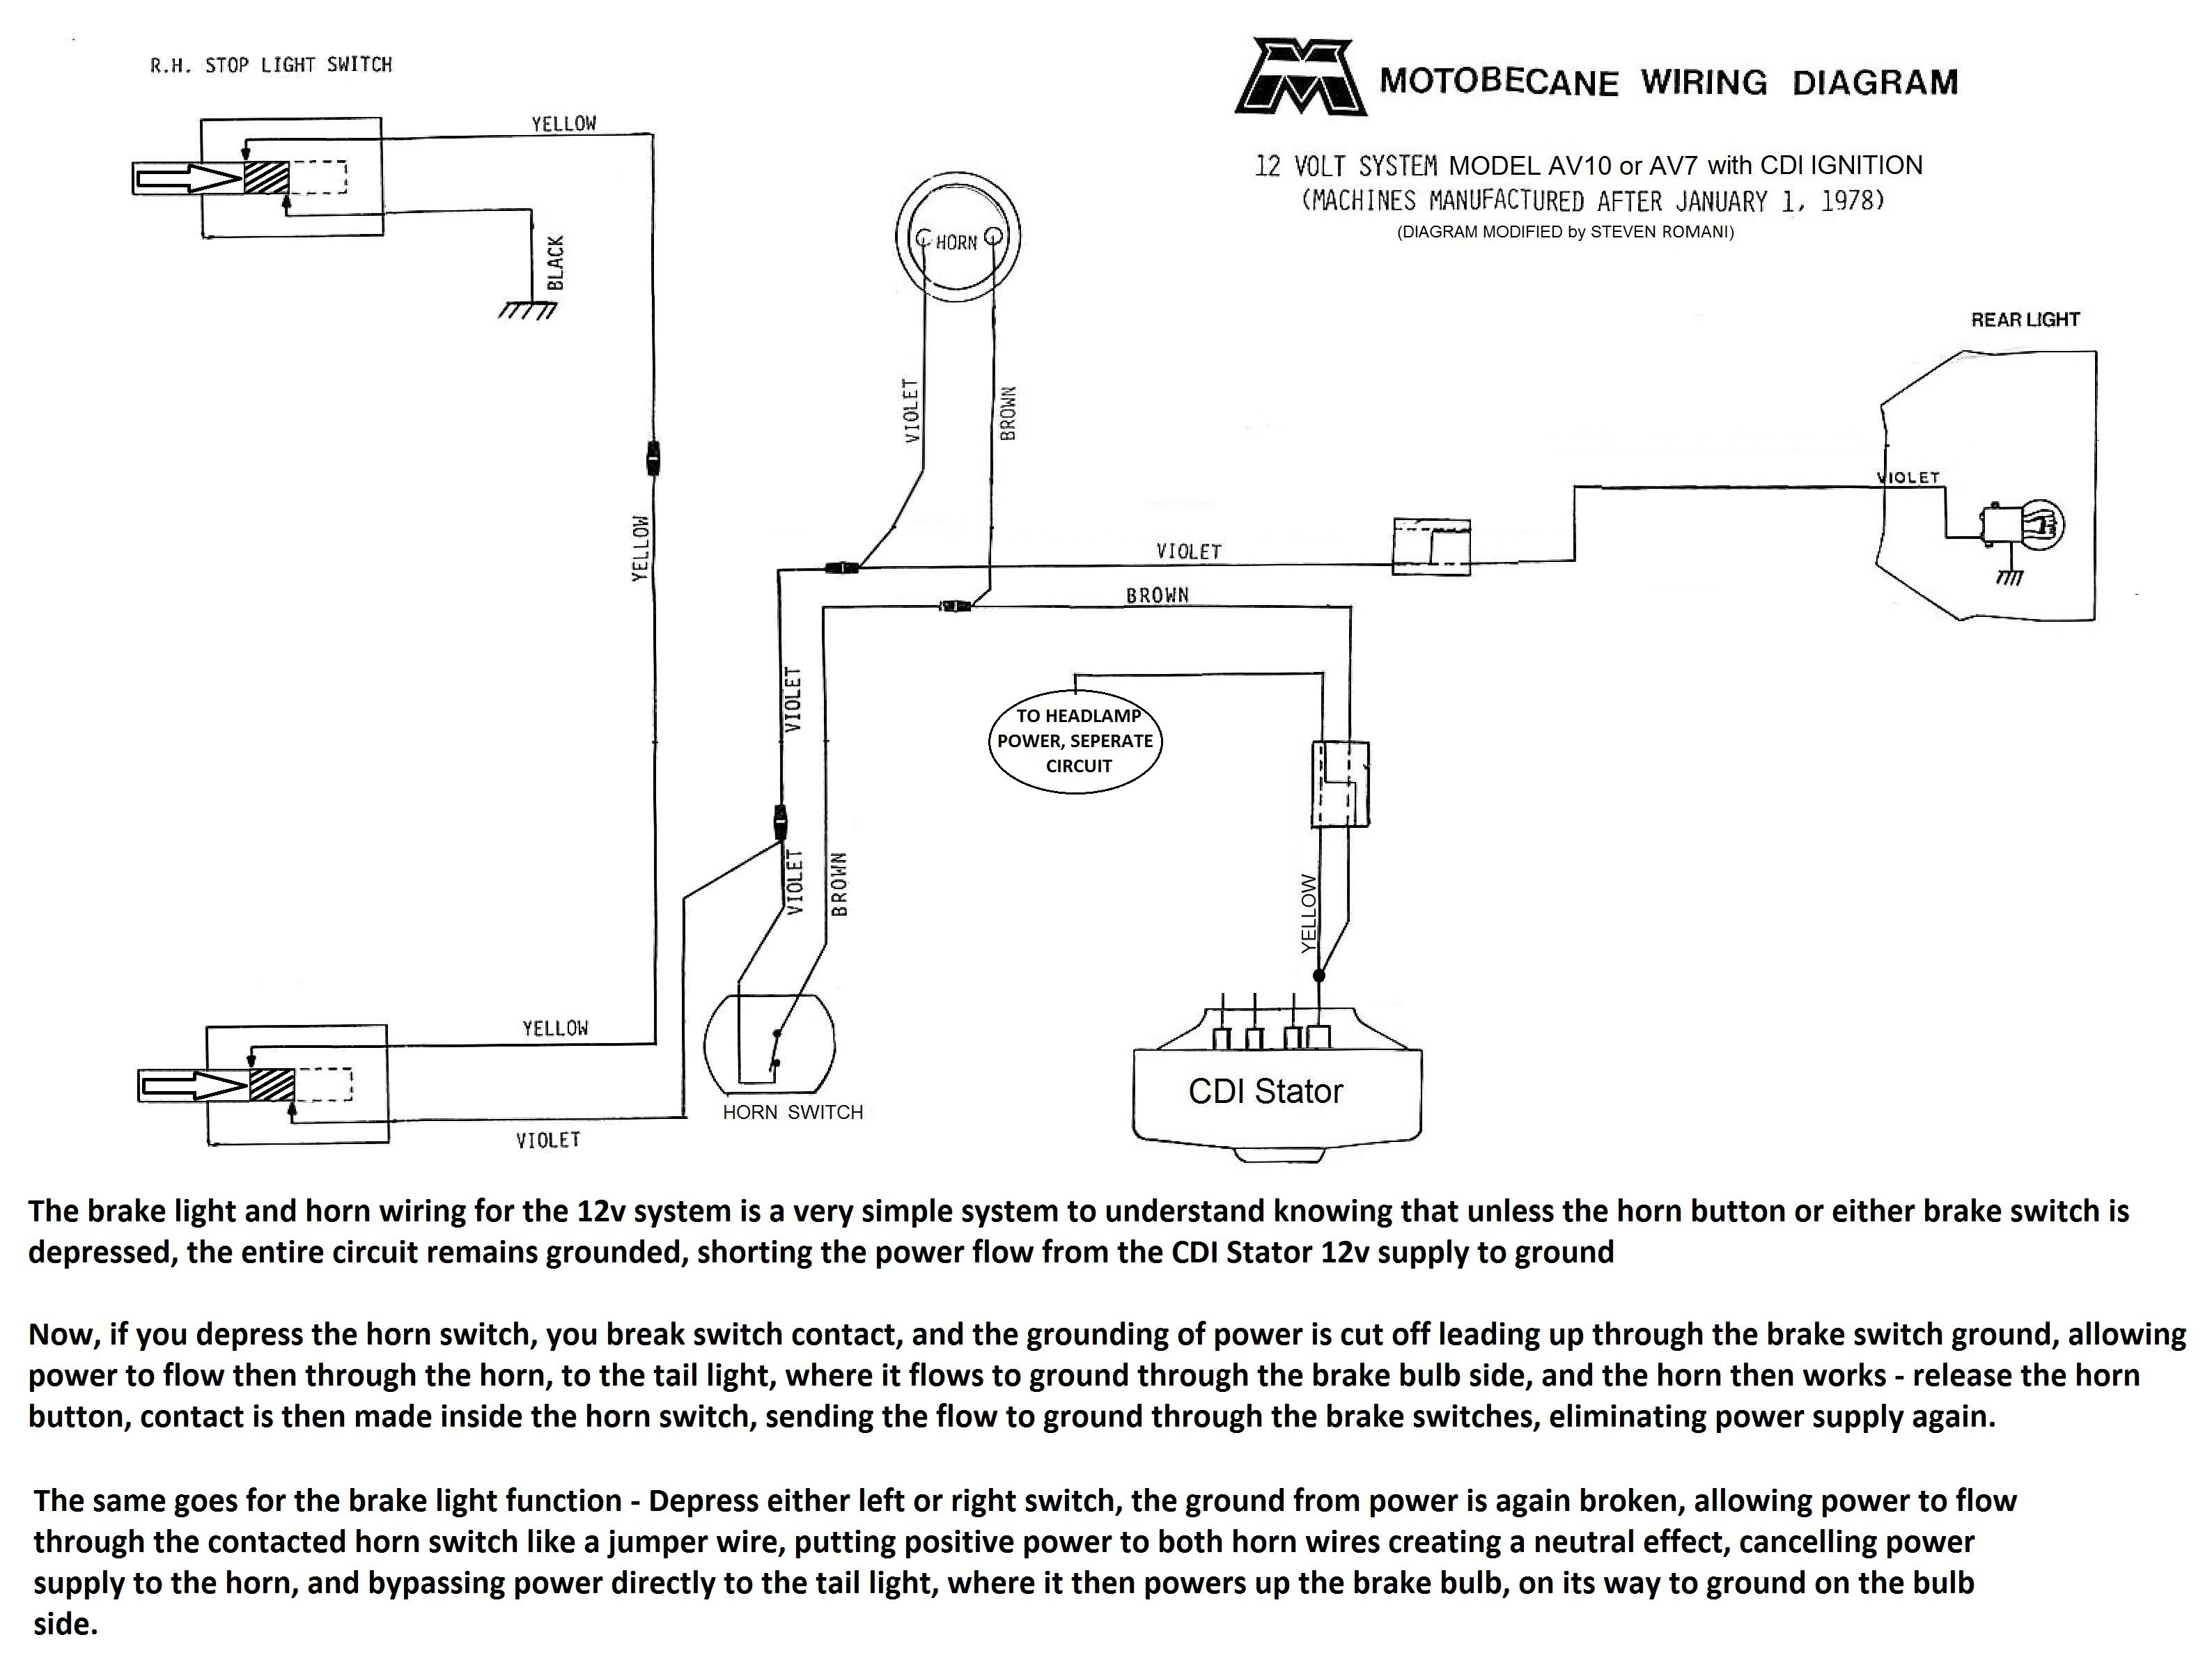 motobecane wiring diagrams mopedwiki new model wiring diagramhome · motobecane wiring diagrams mopedwiki · diagram stp3 wiring diagram wiring diagram schematic circuit